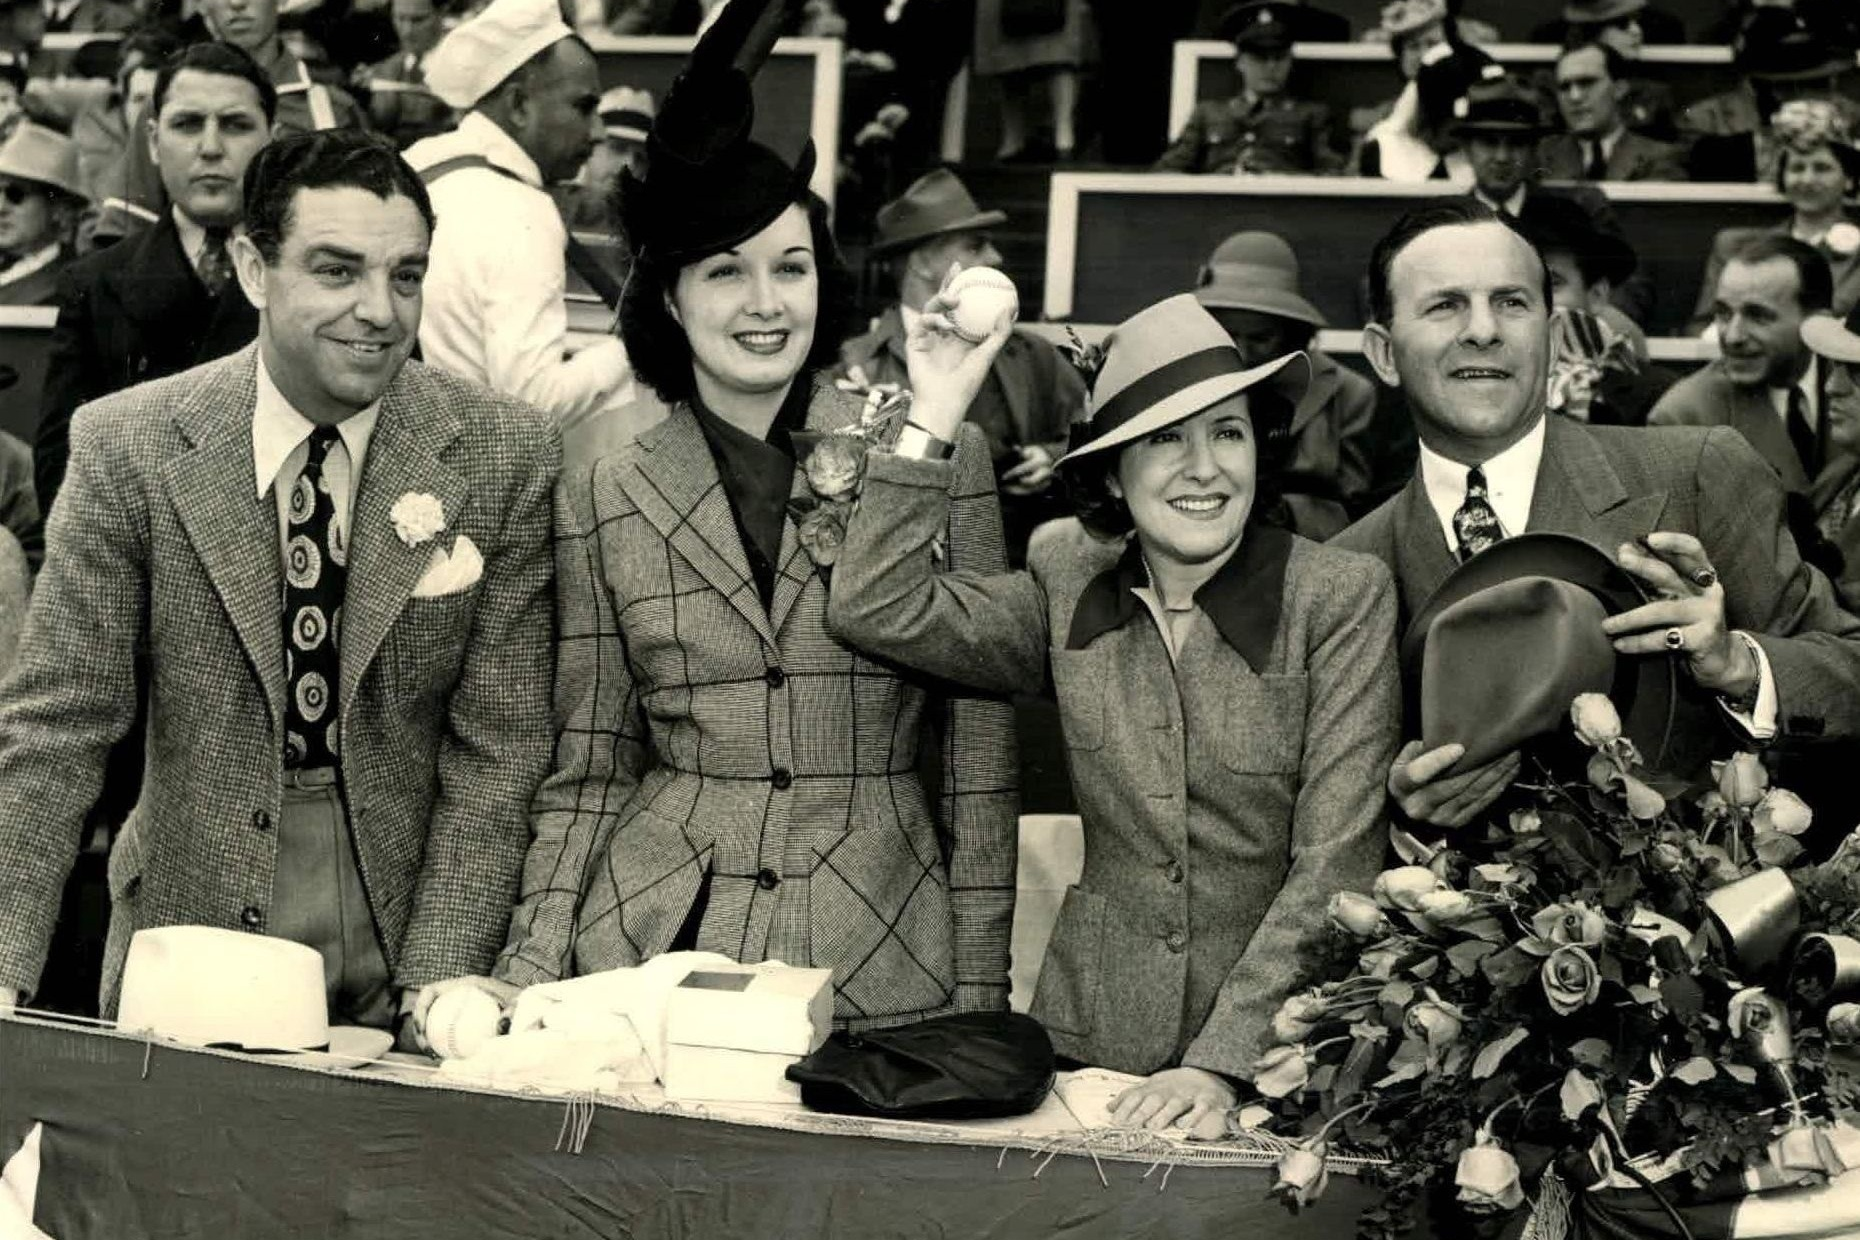 From left, Bob Cobb, Gail Patrick, Gracie Allen, and George Burns at a Hollywood Stars game. Photo via The Sporting News Collection Archives (c. 1940).